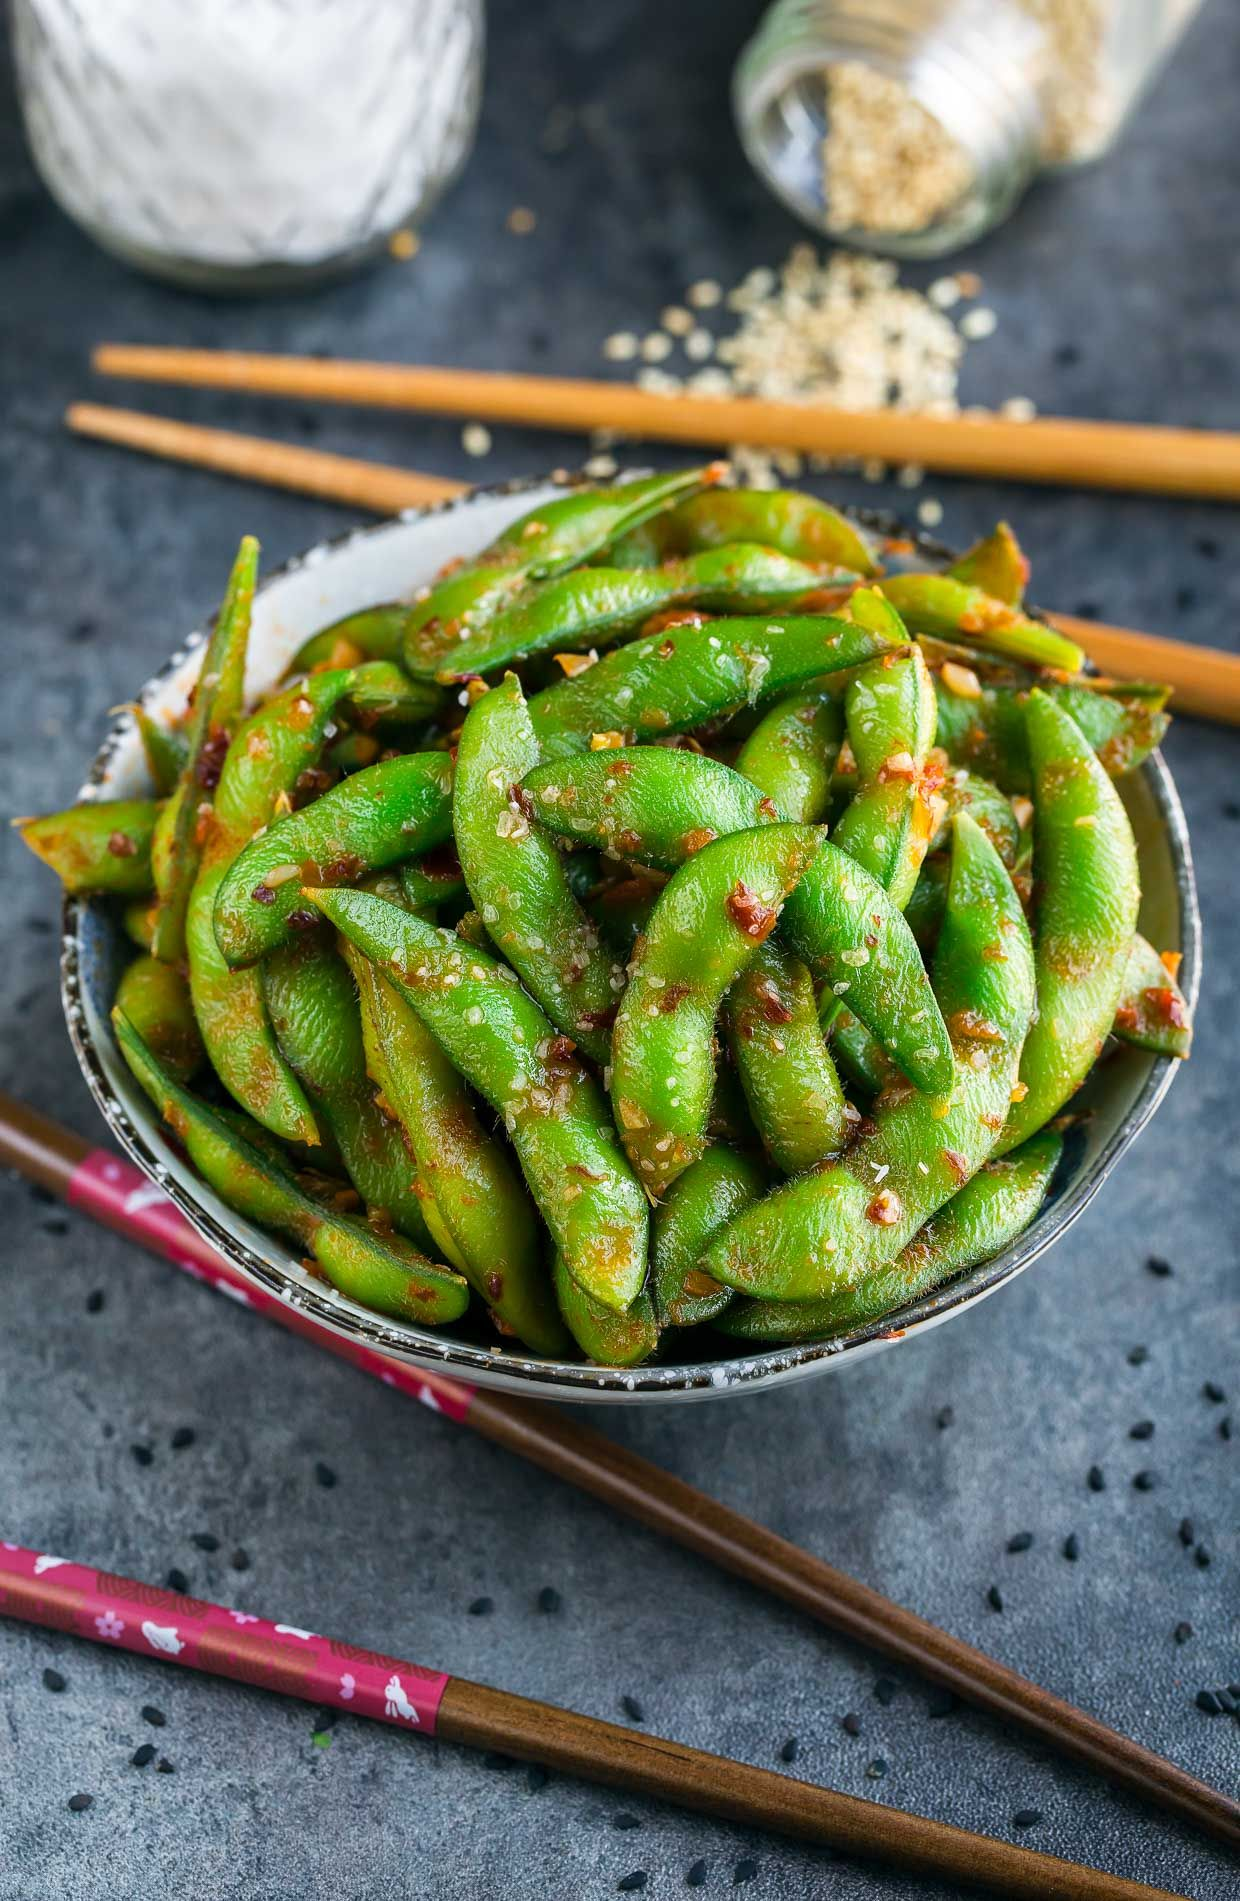 Spicy Edamame Recipe With Images Edamame Recipes Healthy